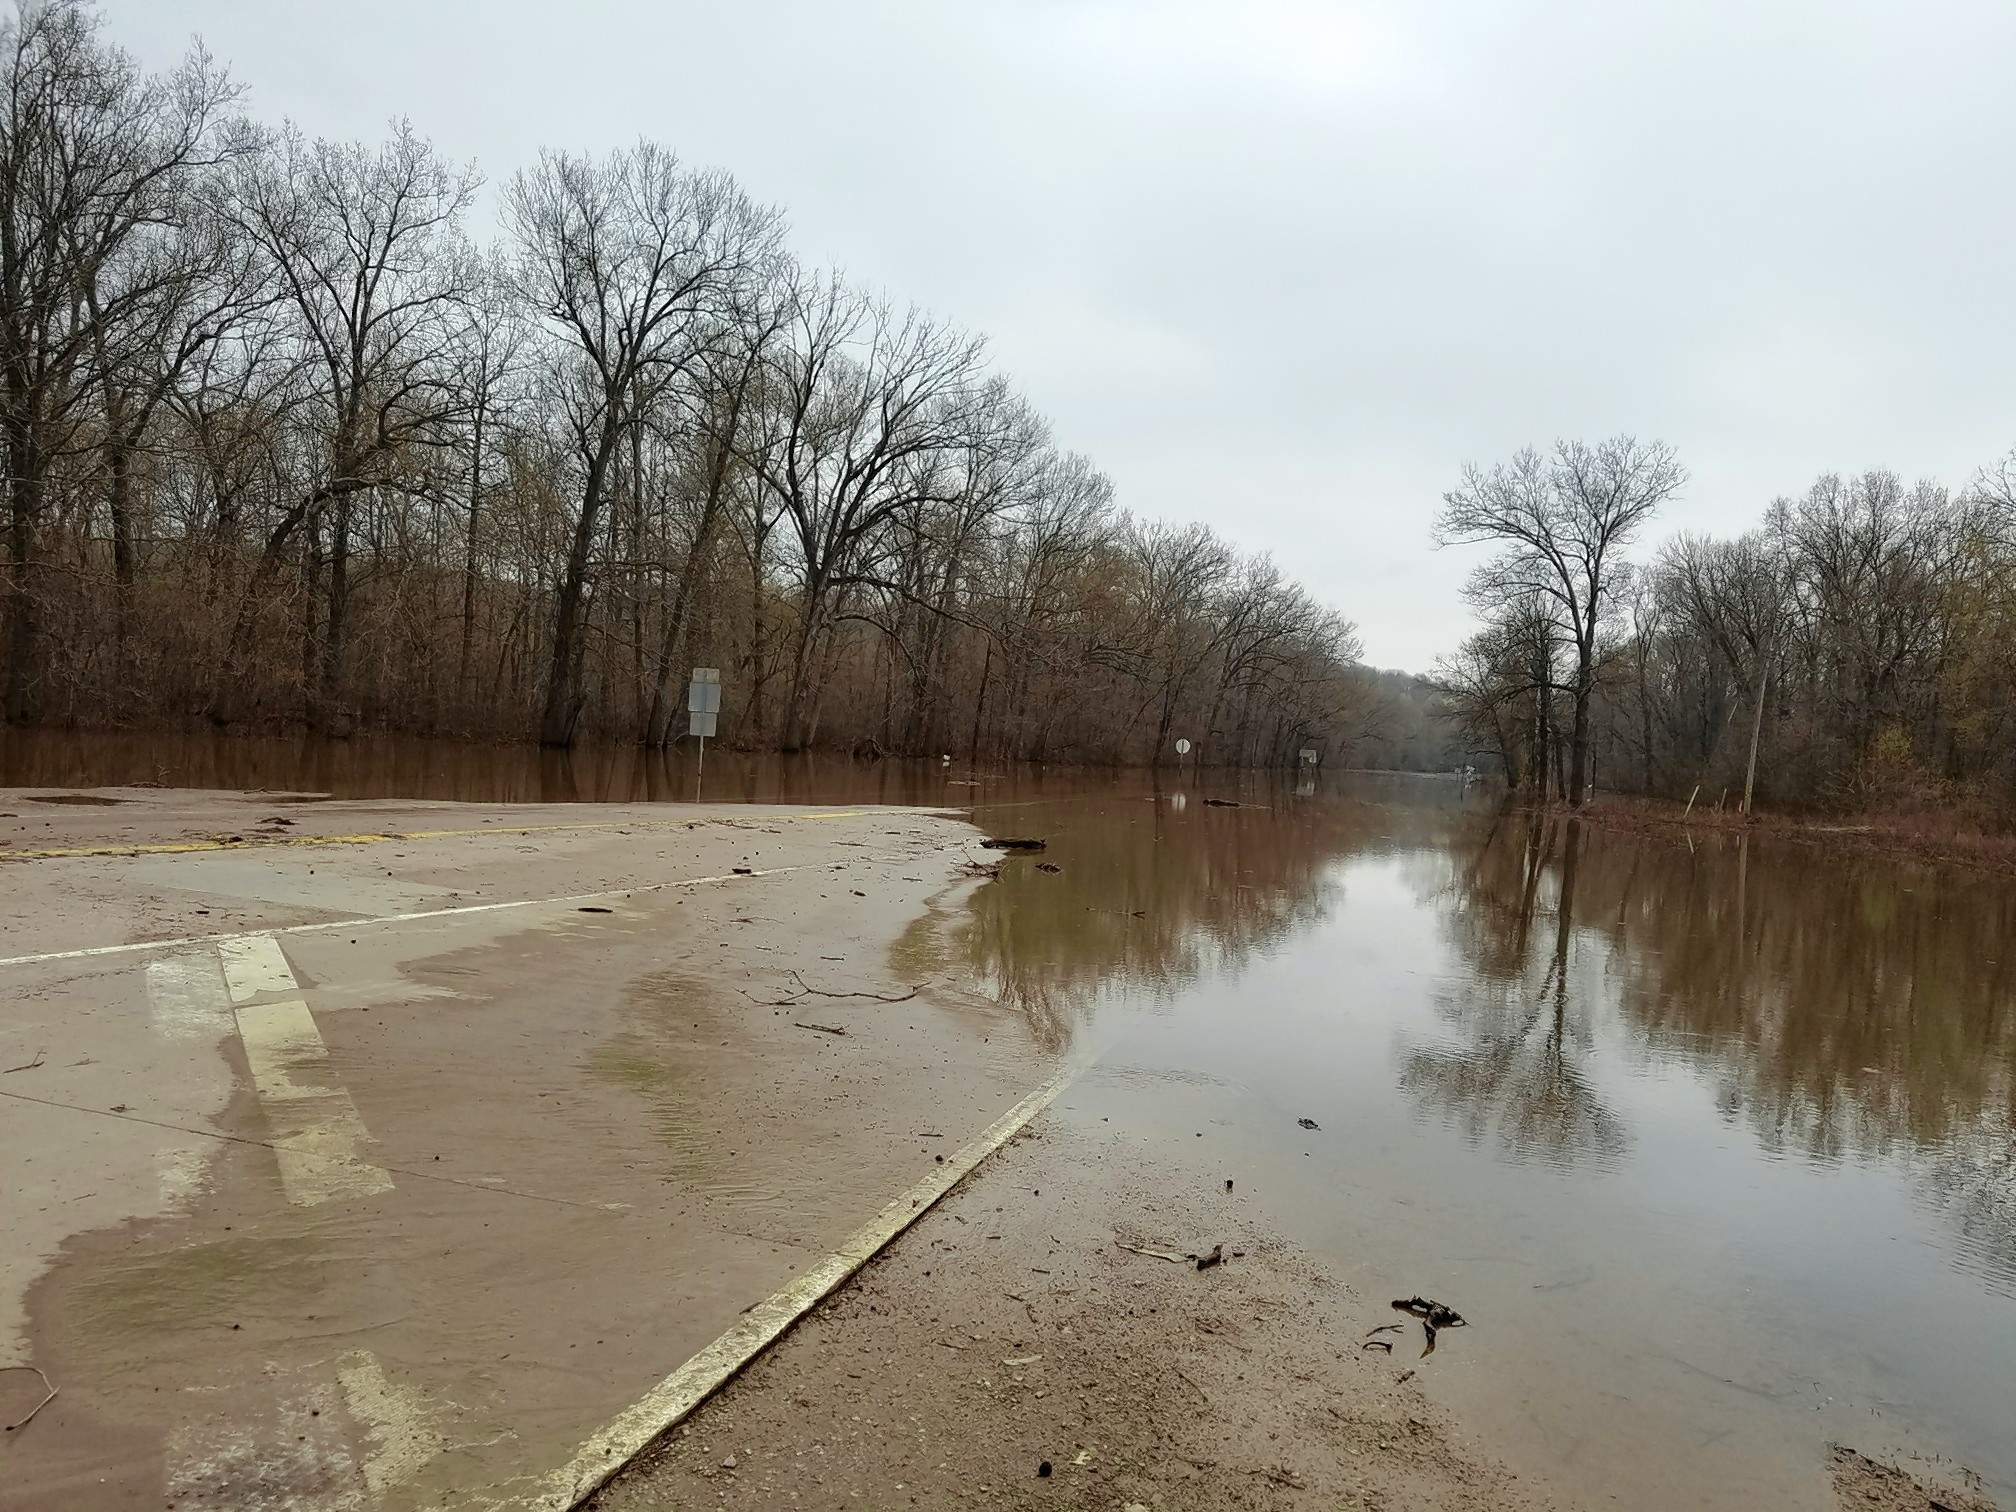 Route 3 remained closed on Monday, as the Mississippi River stubbornly had not receded.